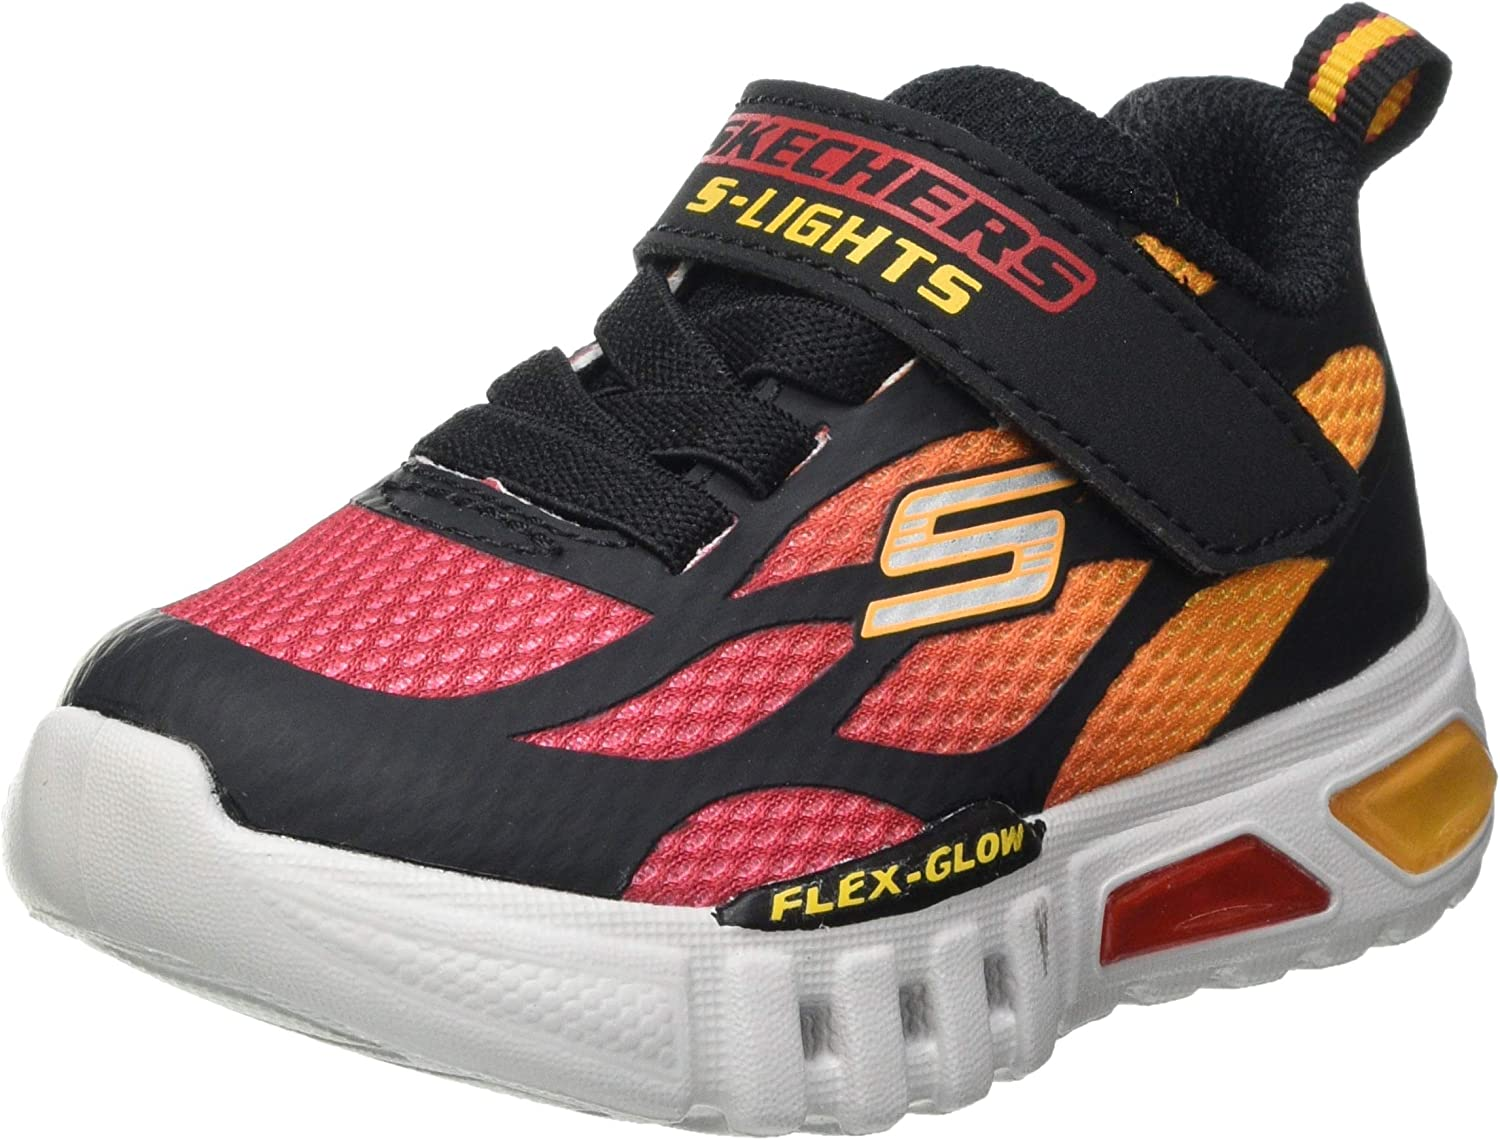 Free Shipping New Skechers Boys' Trainers Same day shipping Low-Top